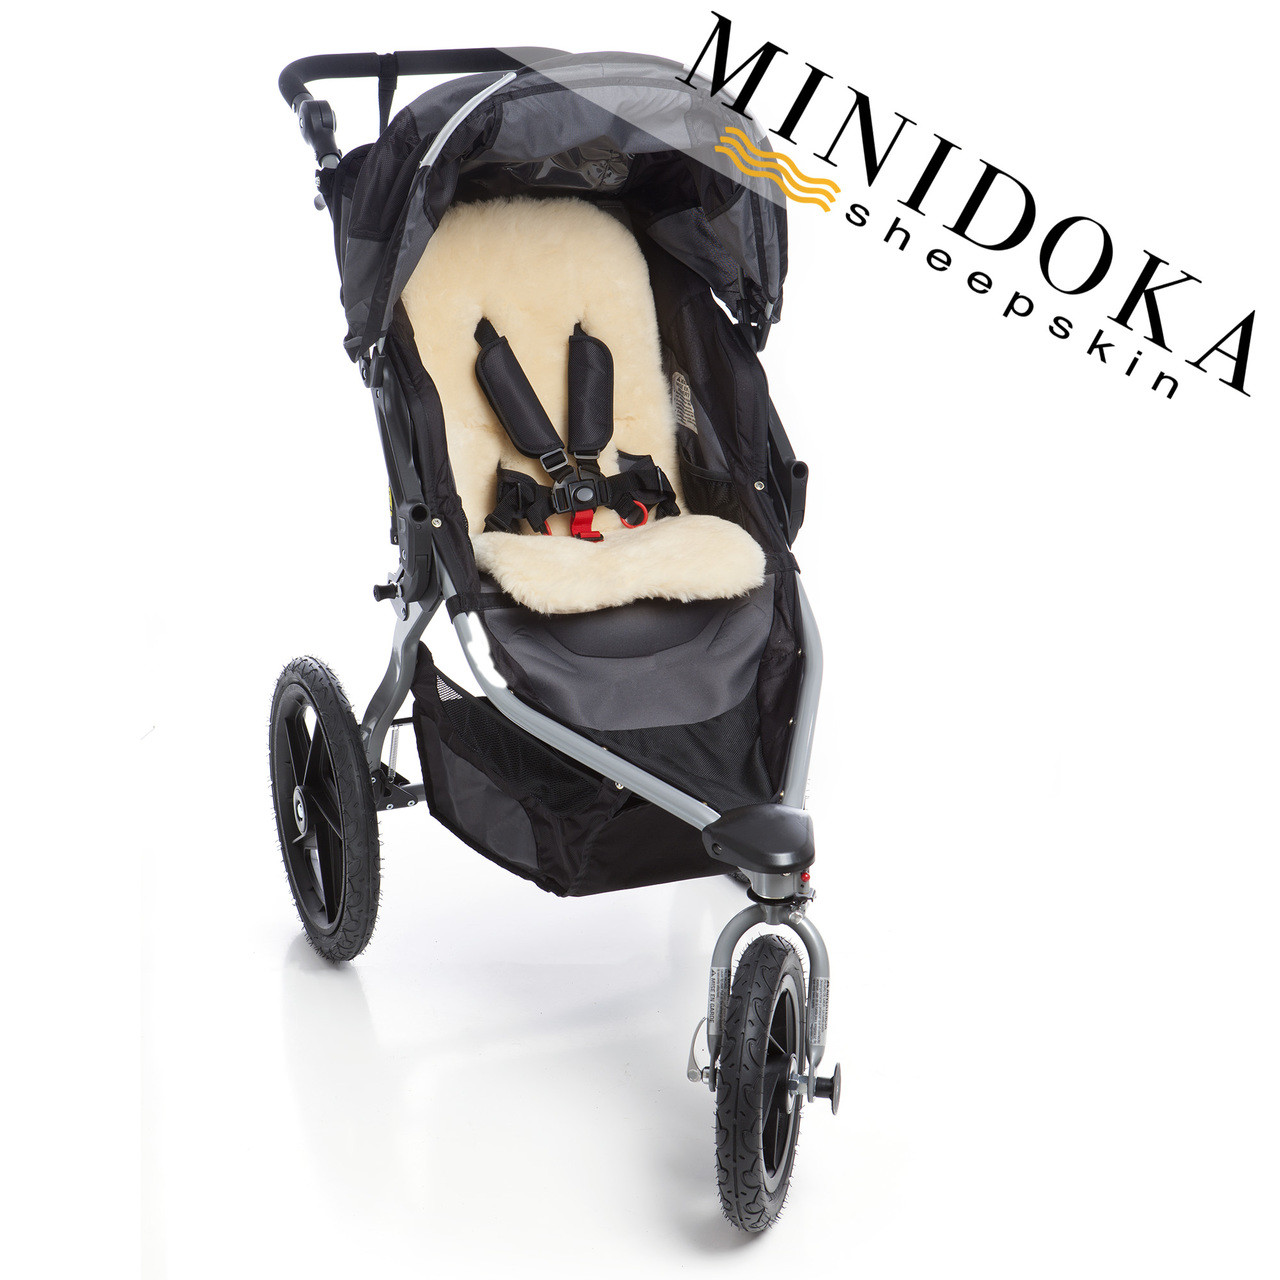 Lambskin stroller liner for universal fit in BOB, Graco, and more.